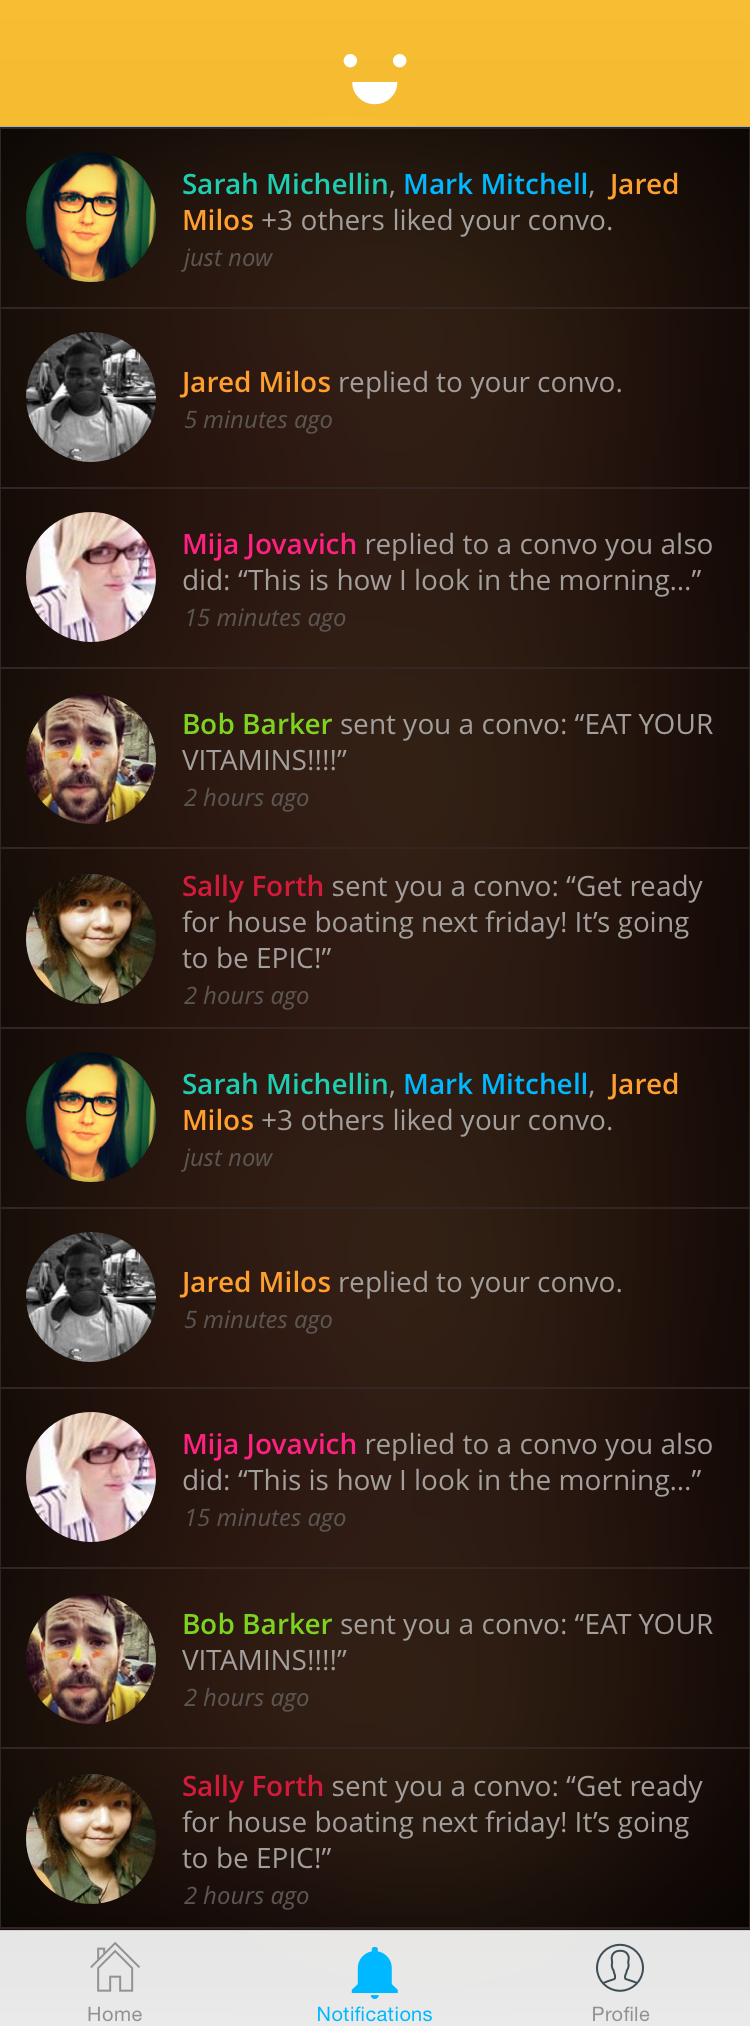 Notifications@2x.png